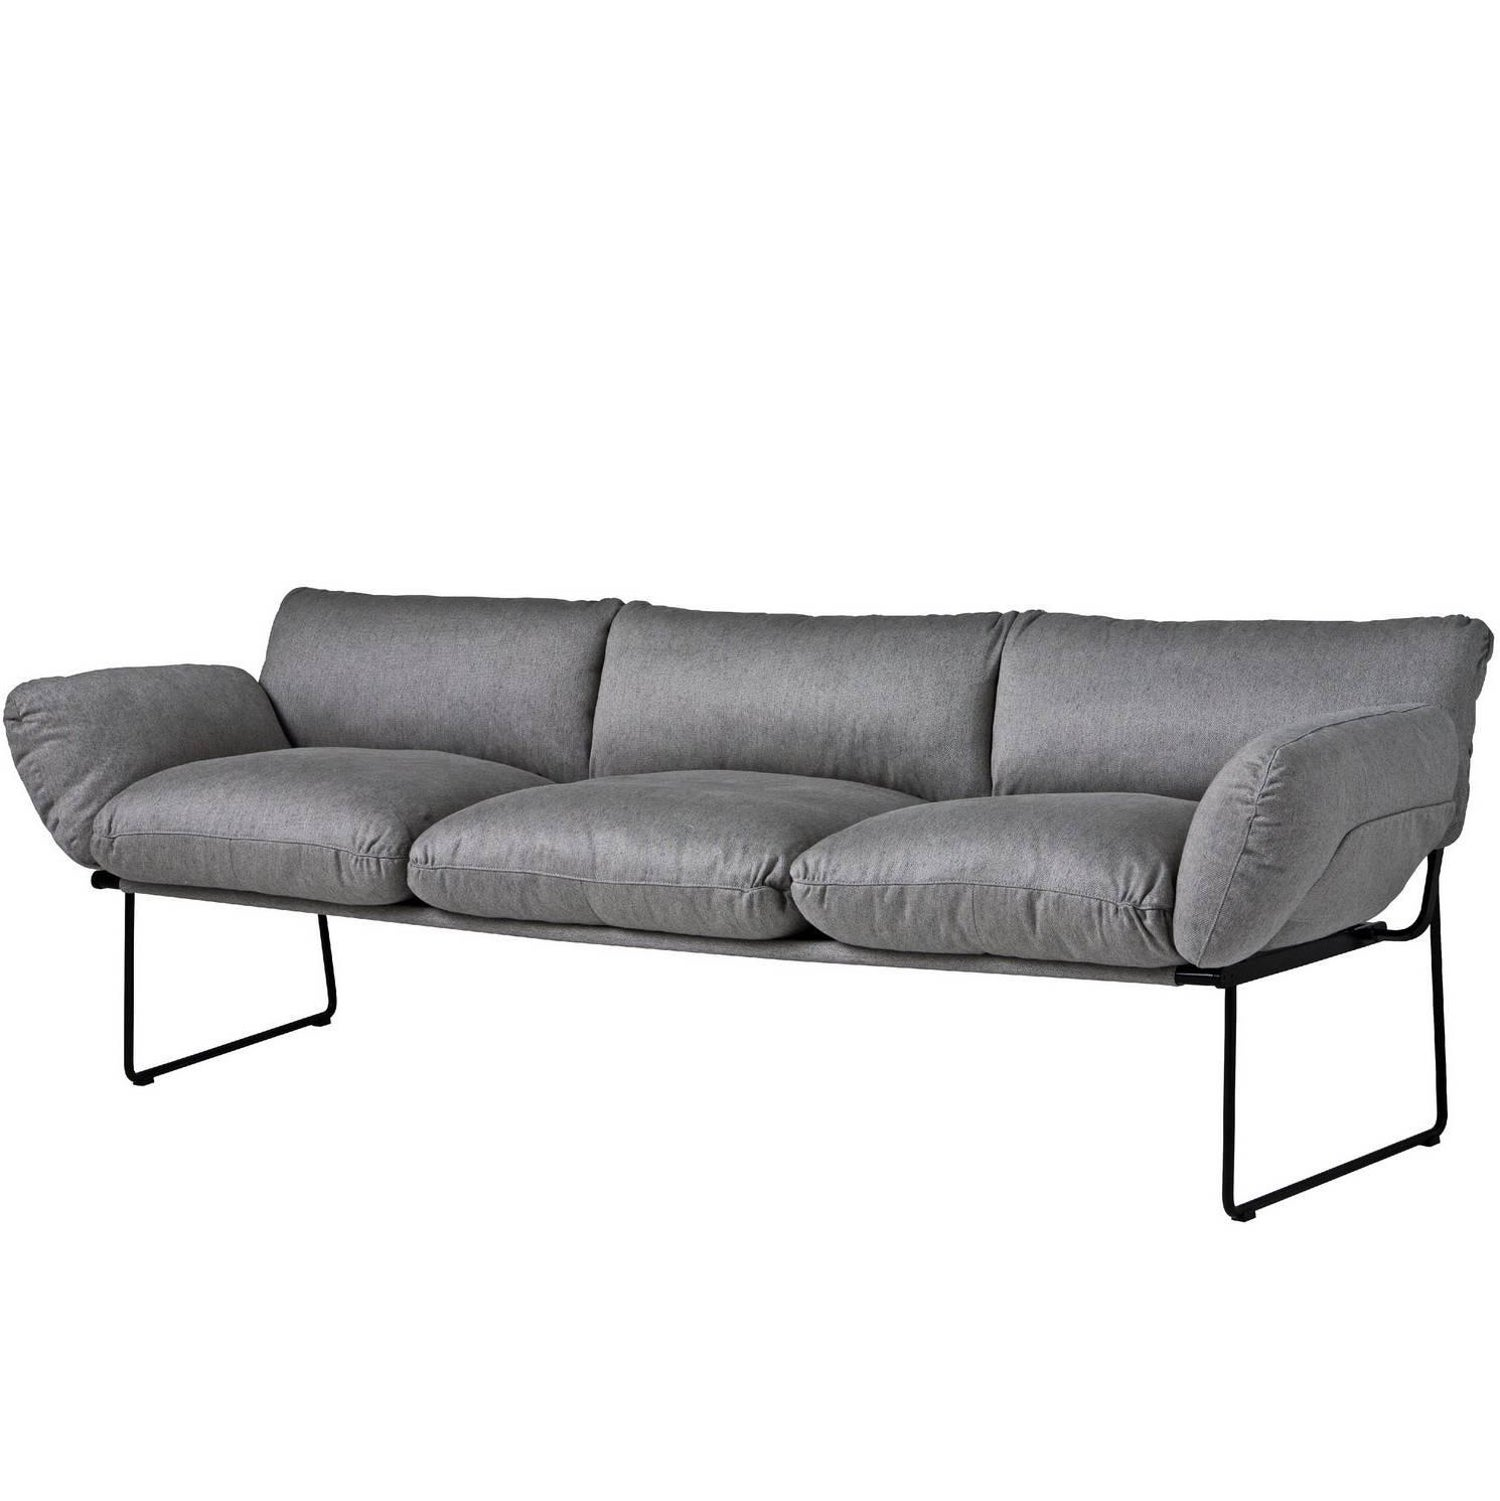 Elisa indoor three seat sofa designed by enzo mari for driade for elisa indoor three seat sofa designed by enzo mari for driade for sale at 1stdibs parisarafo Choice Image